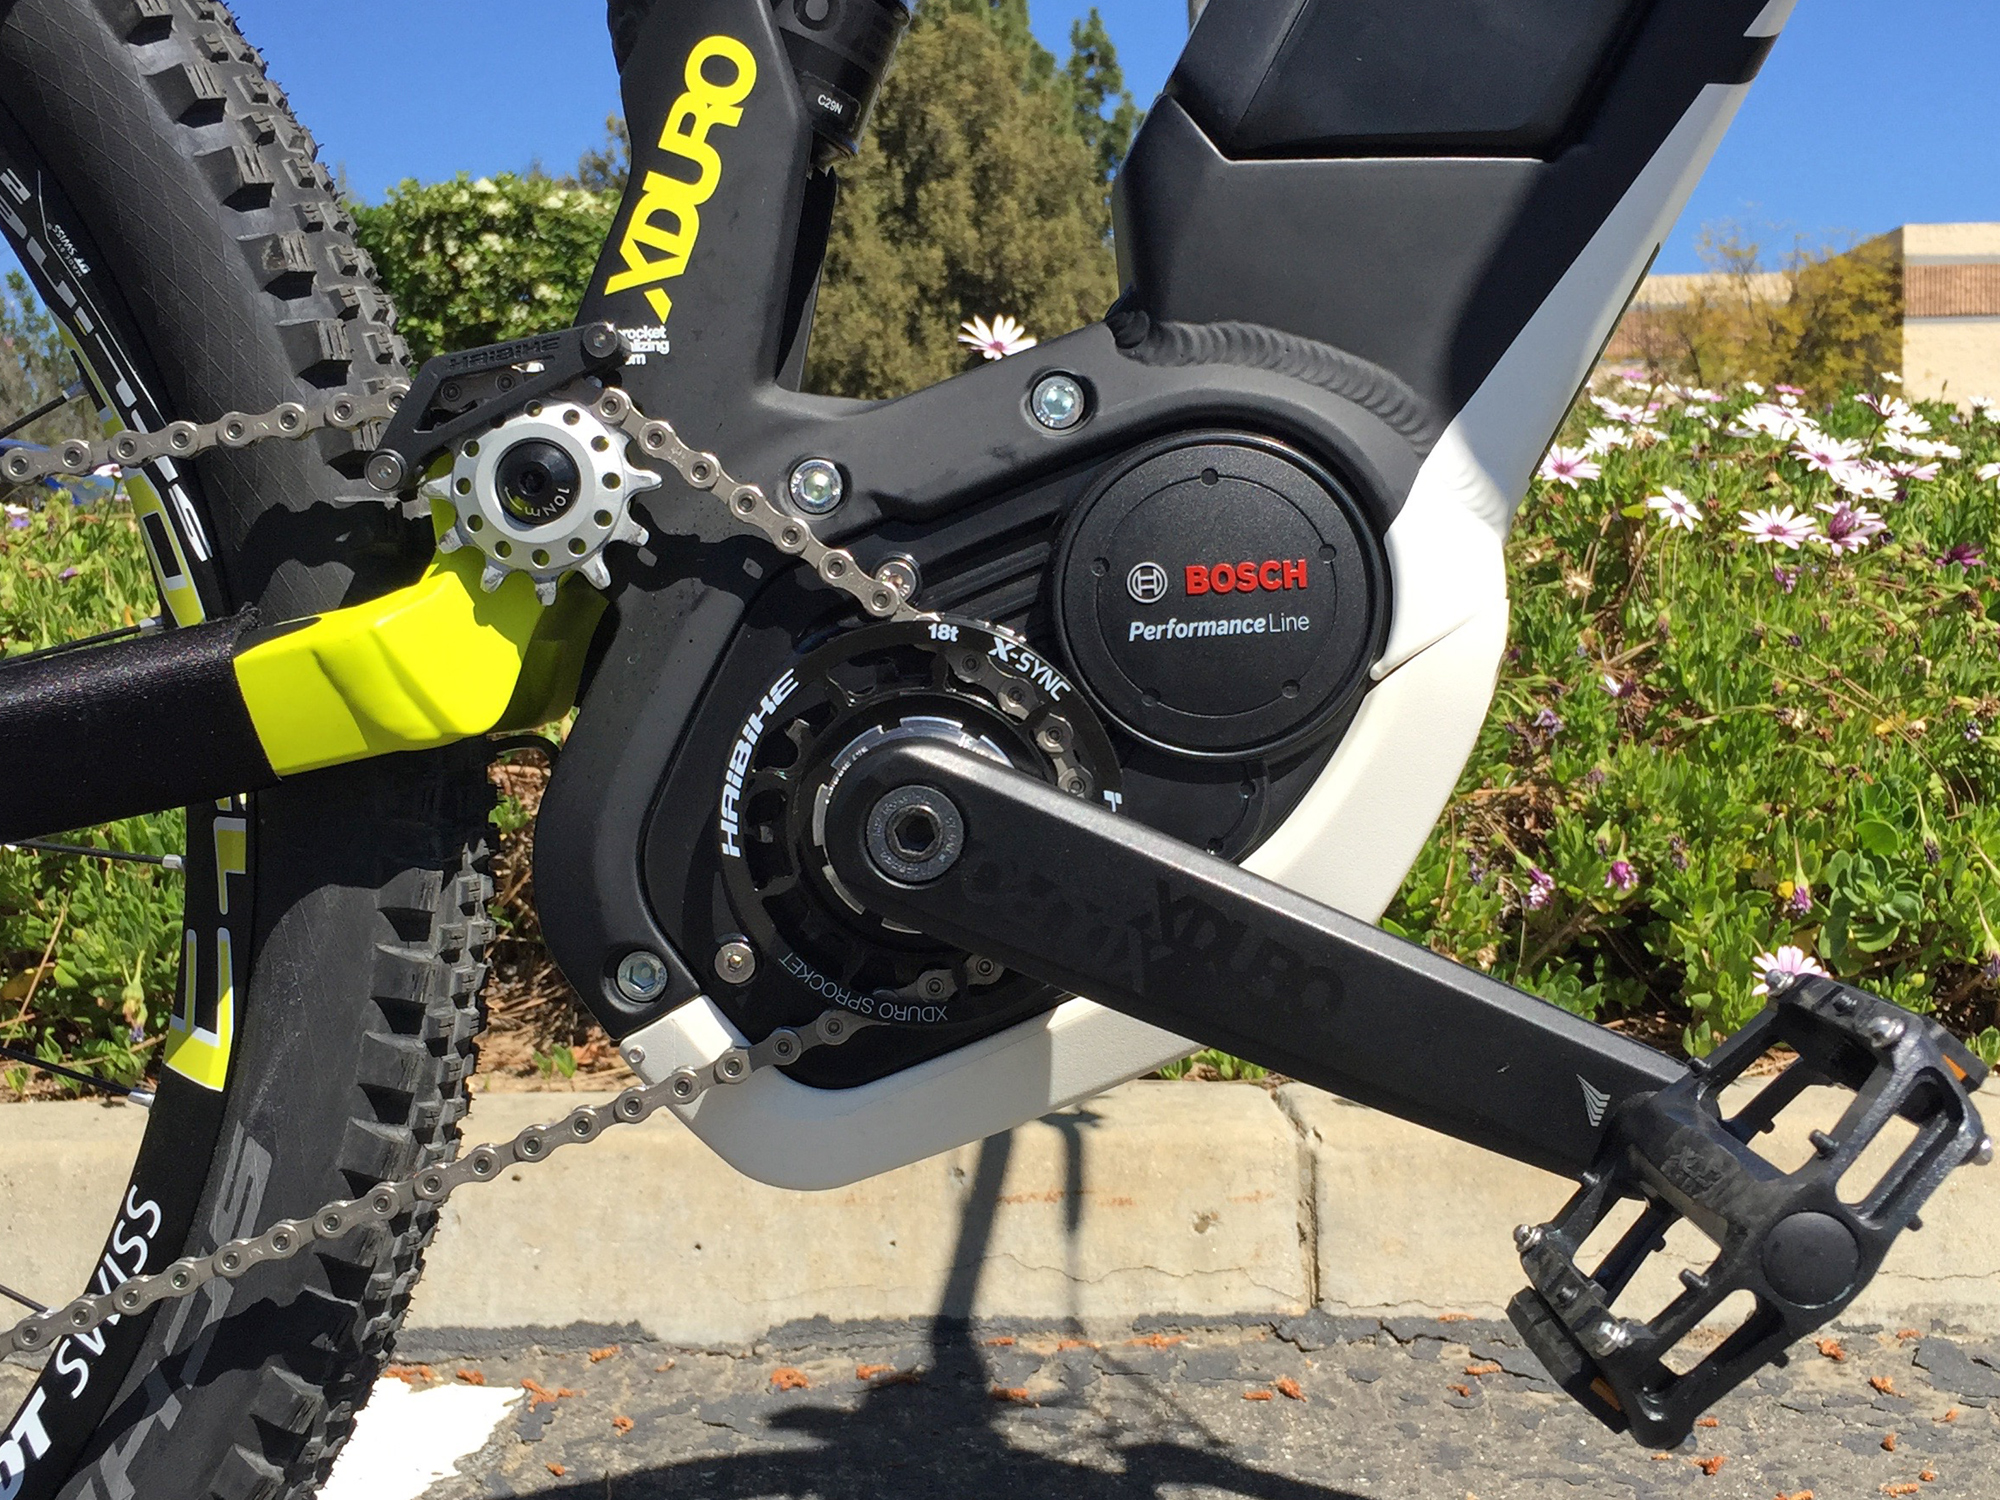 electric bike mid drive motor comparison electric bike forum q&a